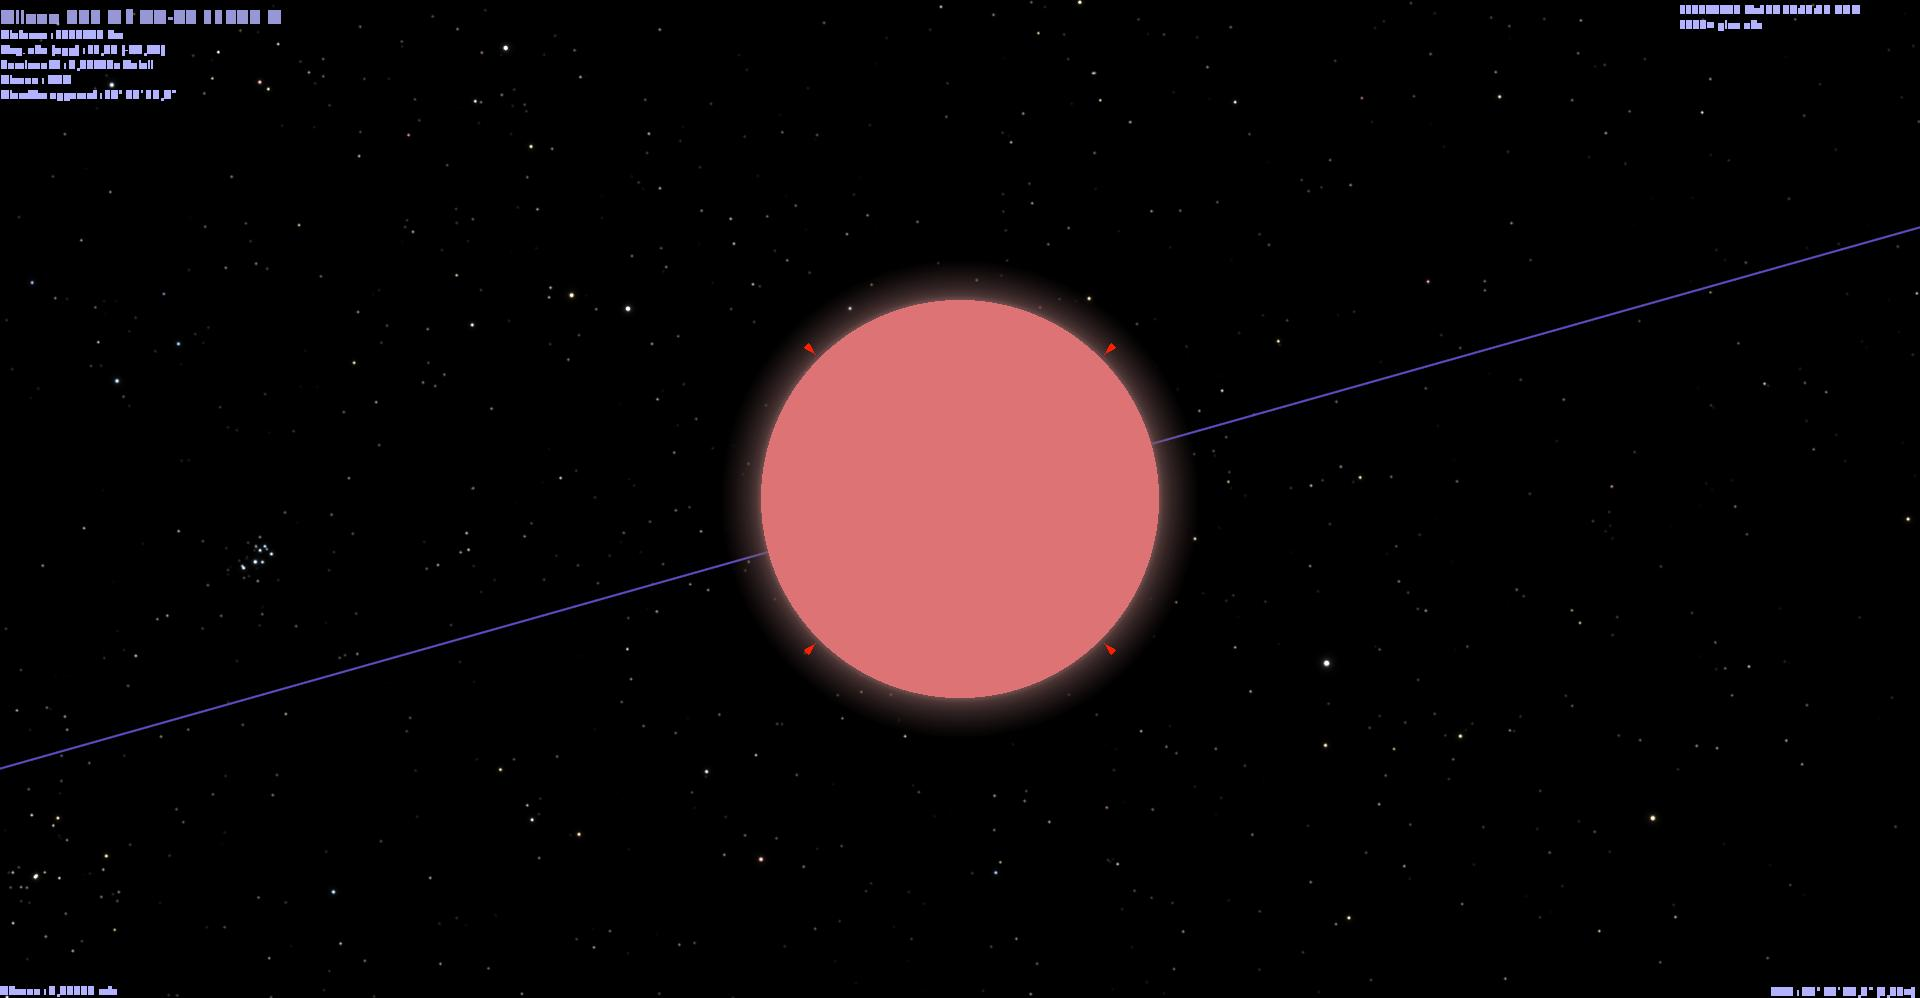 Gliese 667 - Pics about space